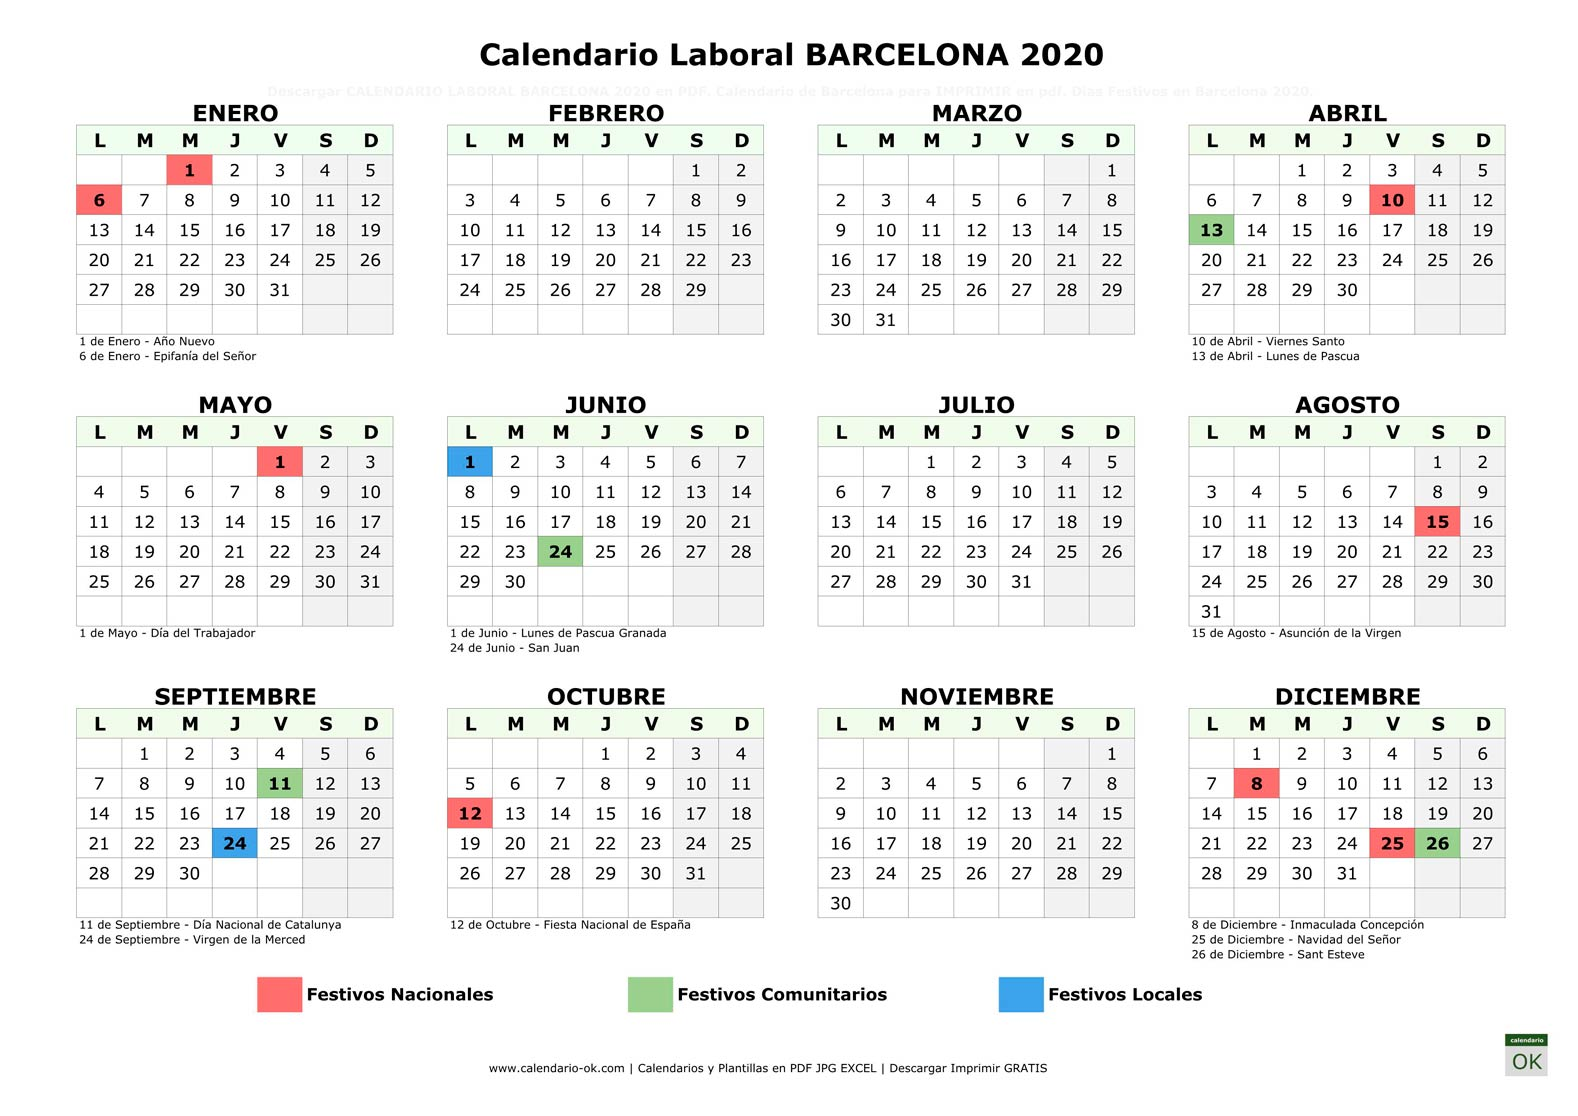 Calendario Laboral BARCELONA 2020 horizontal